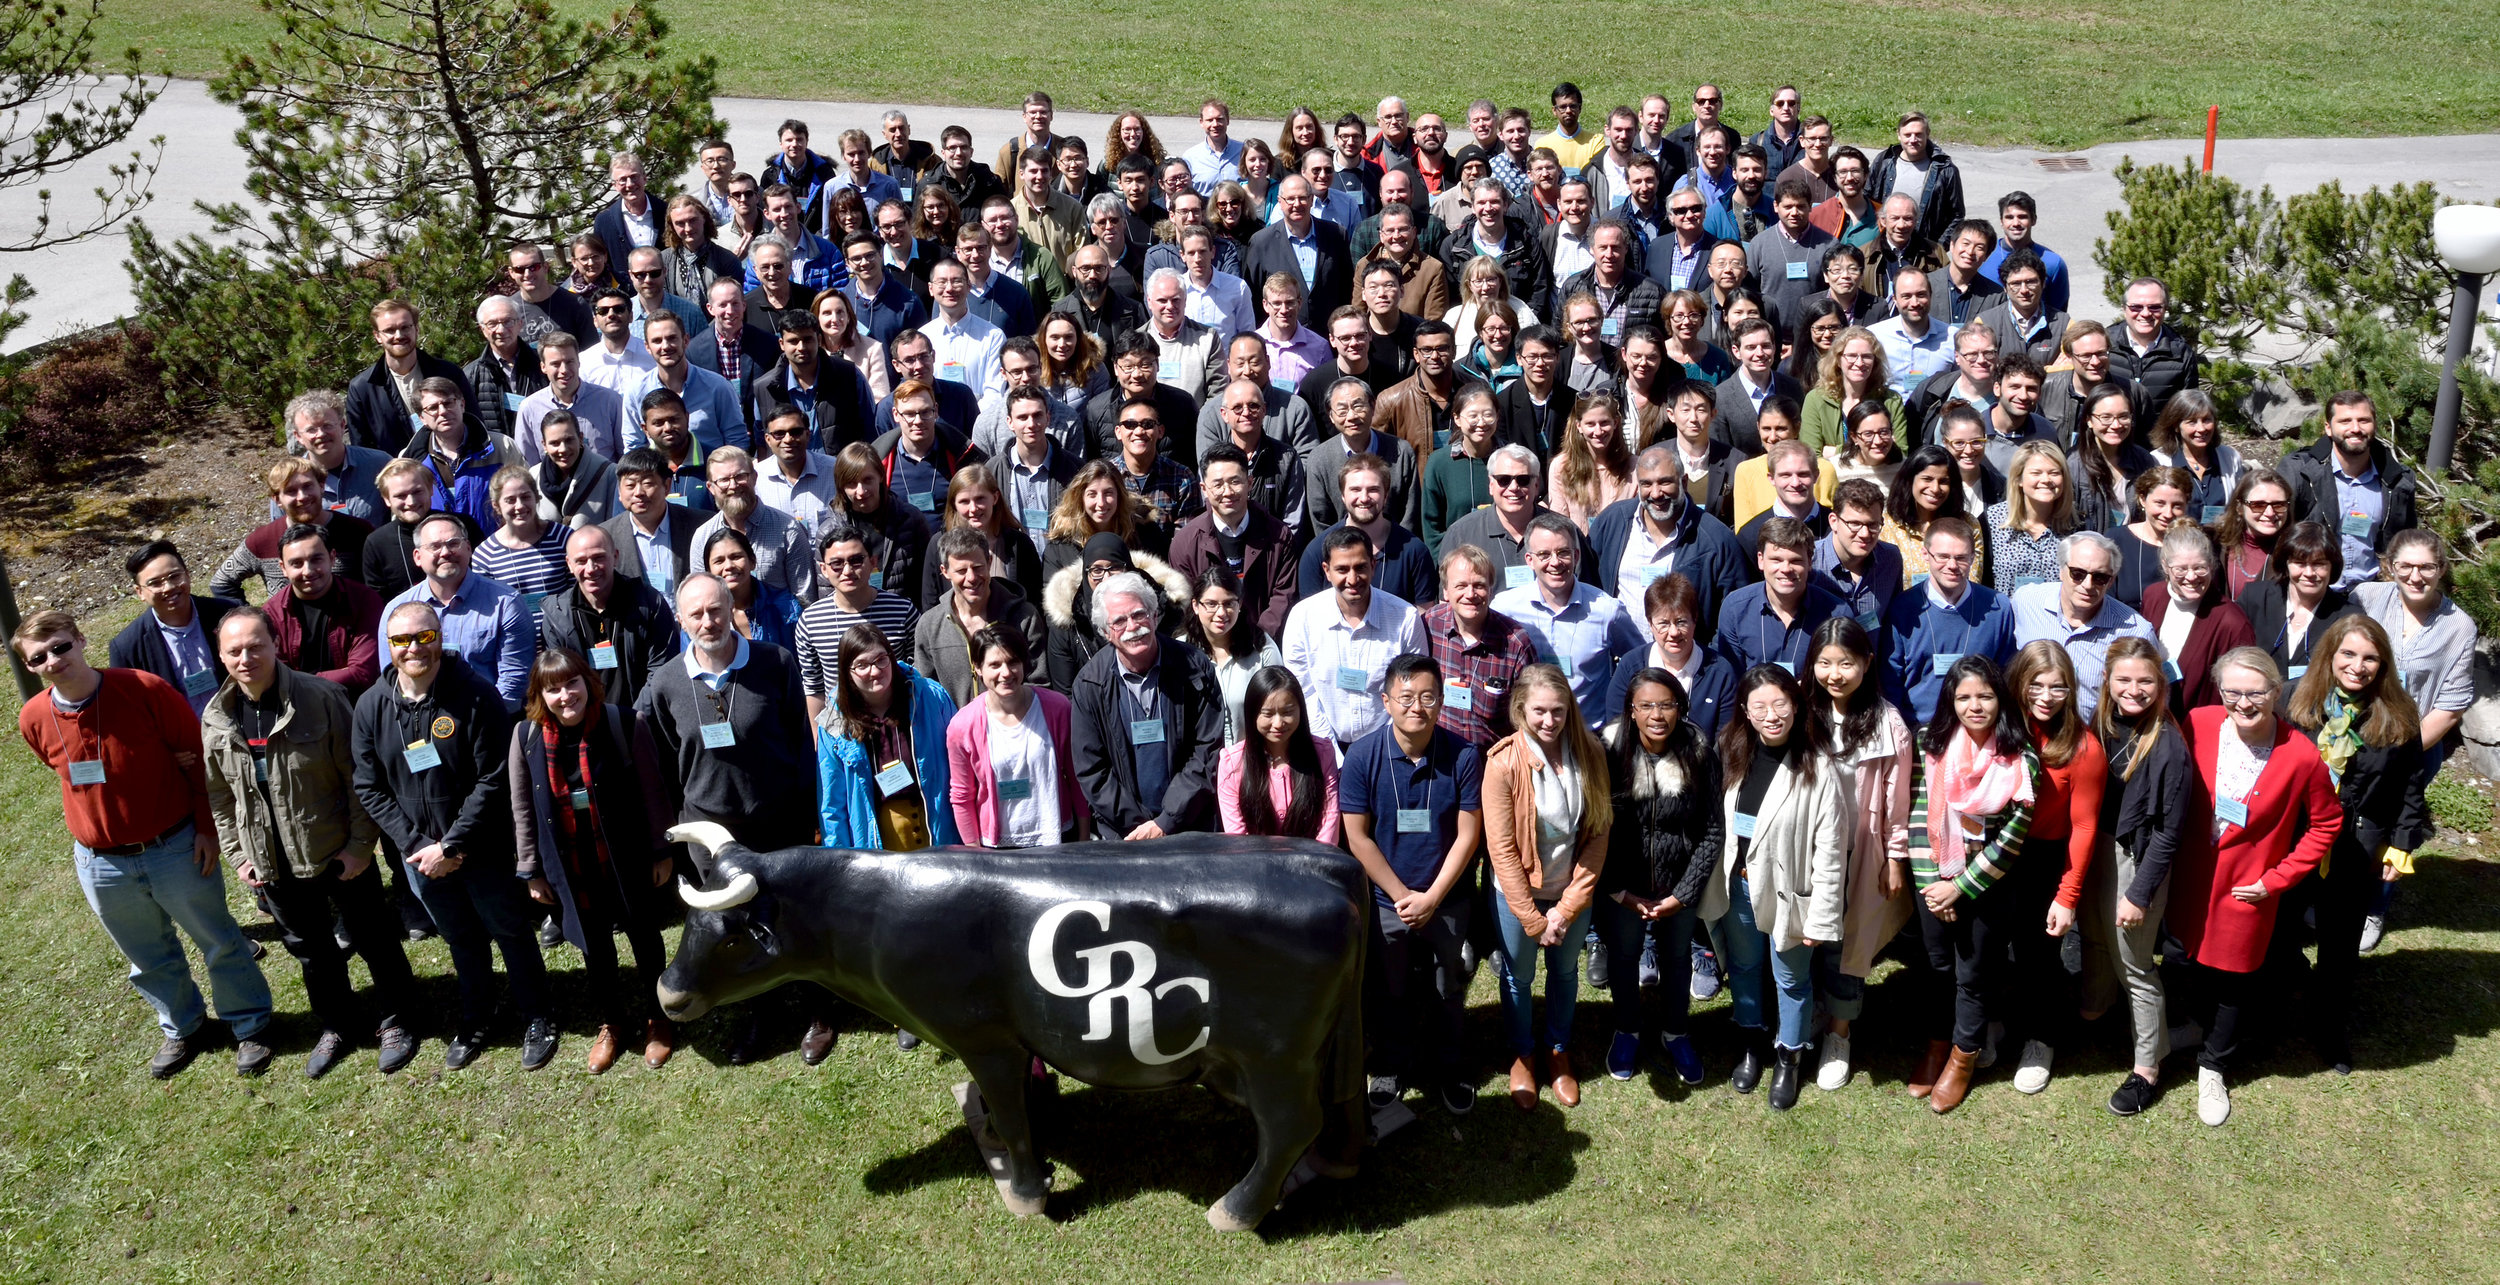 All the attendees of the GRC - CCUS in Les Diablerets, Switzerland.